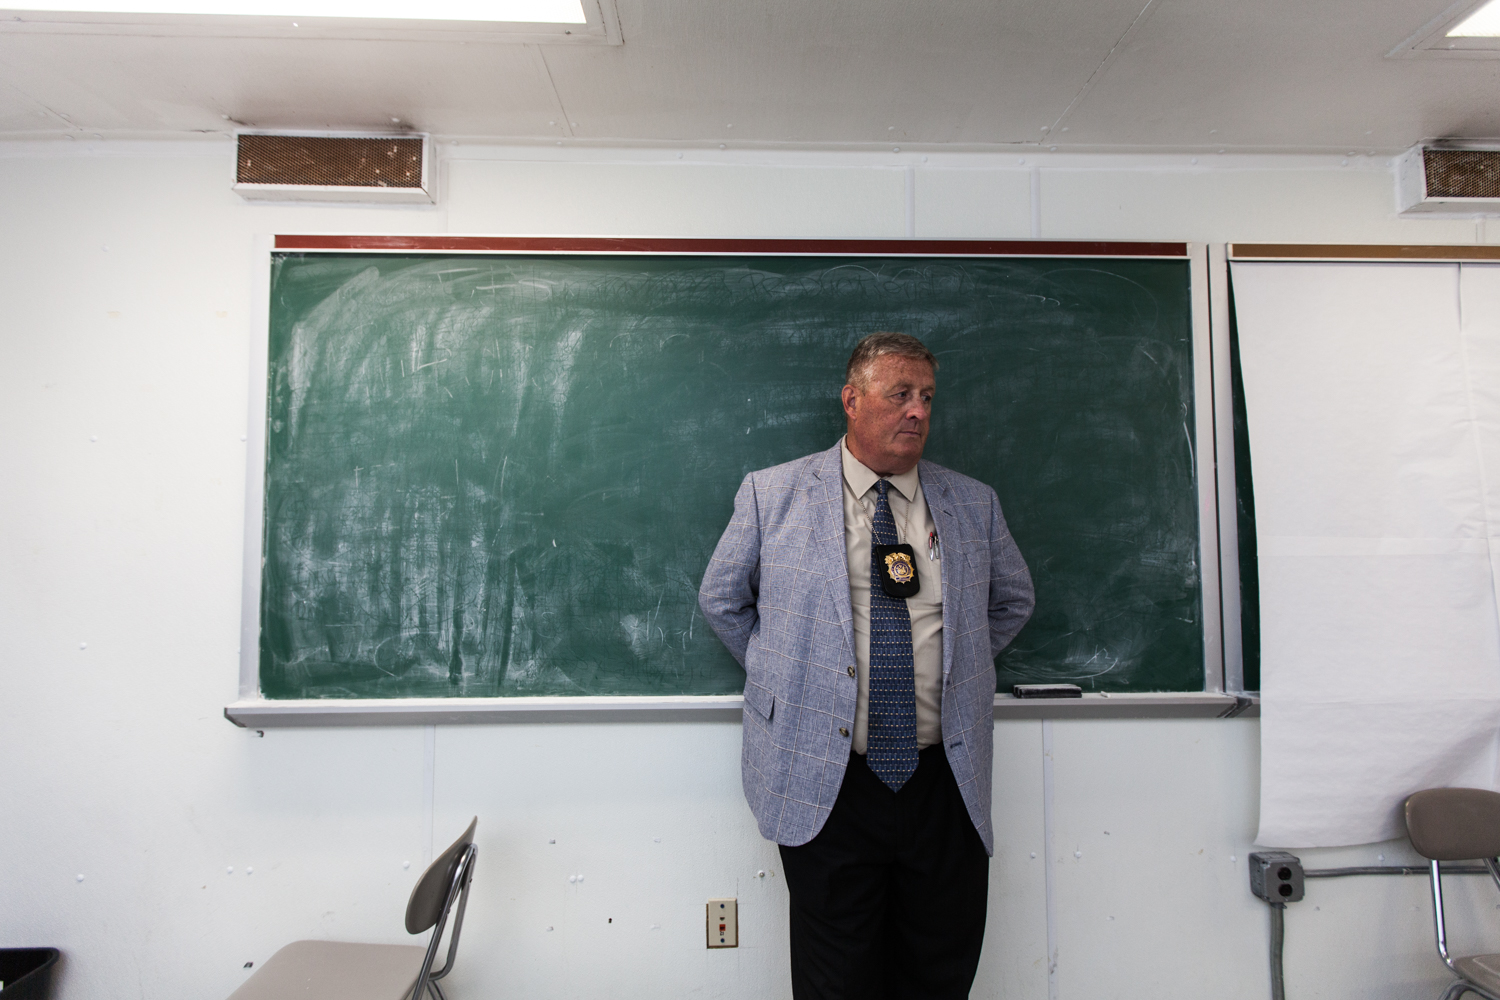 Department of Correction Deputy Commissioner James Walsh in a classroom at the George Motchan Detention Center on Rikers Island.  PHOTO: Emily Assiran for Observer